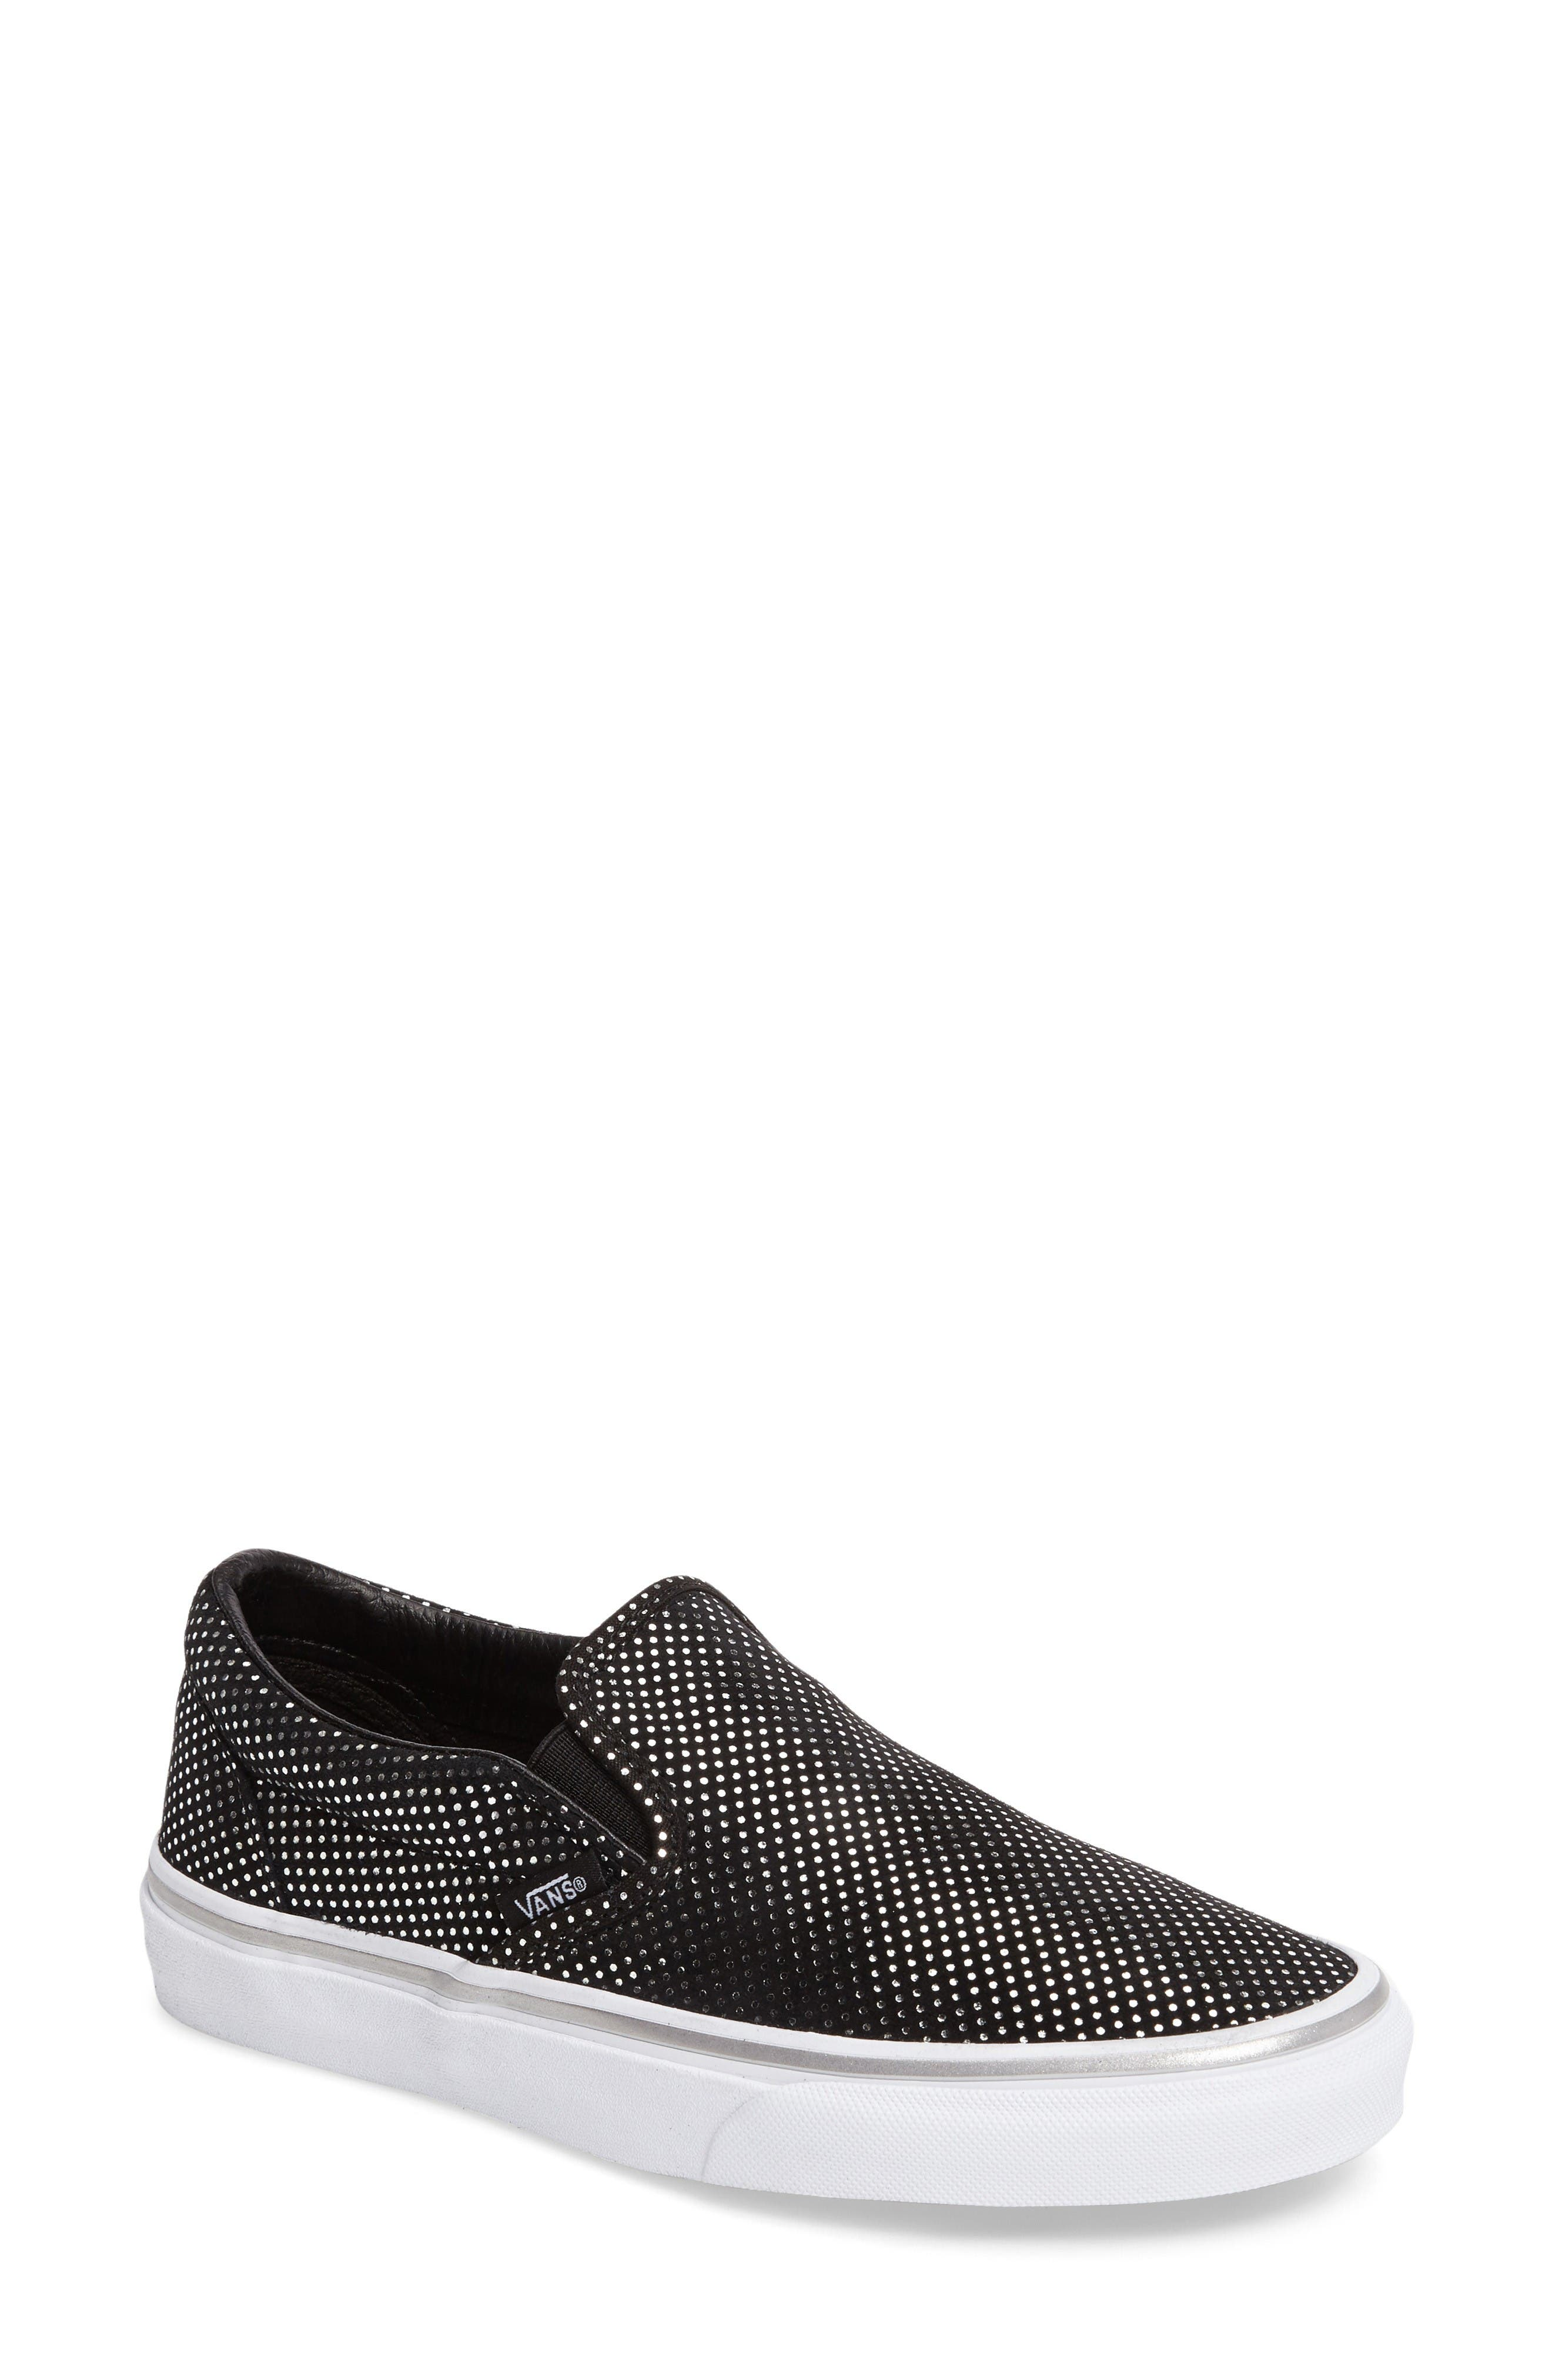 Alternate Image 1 Selected - Vans Classic Slip-On Sneaker (Women)